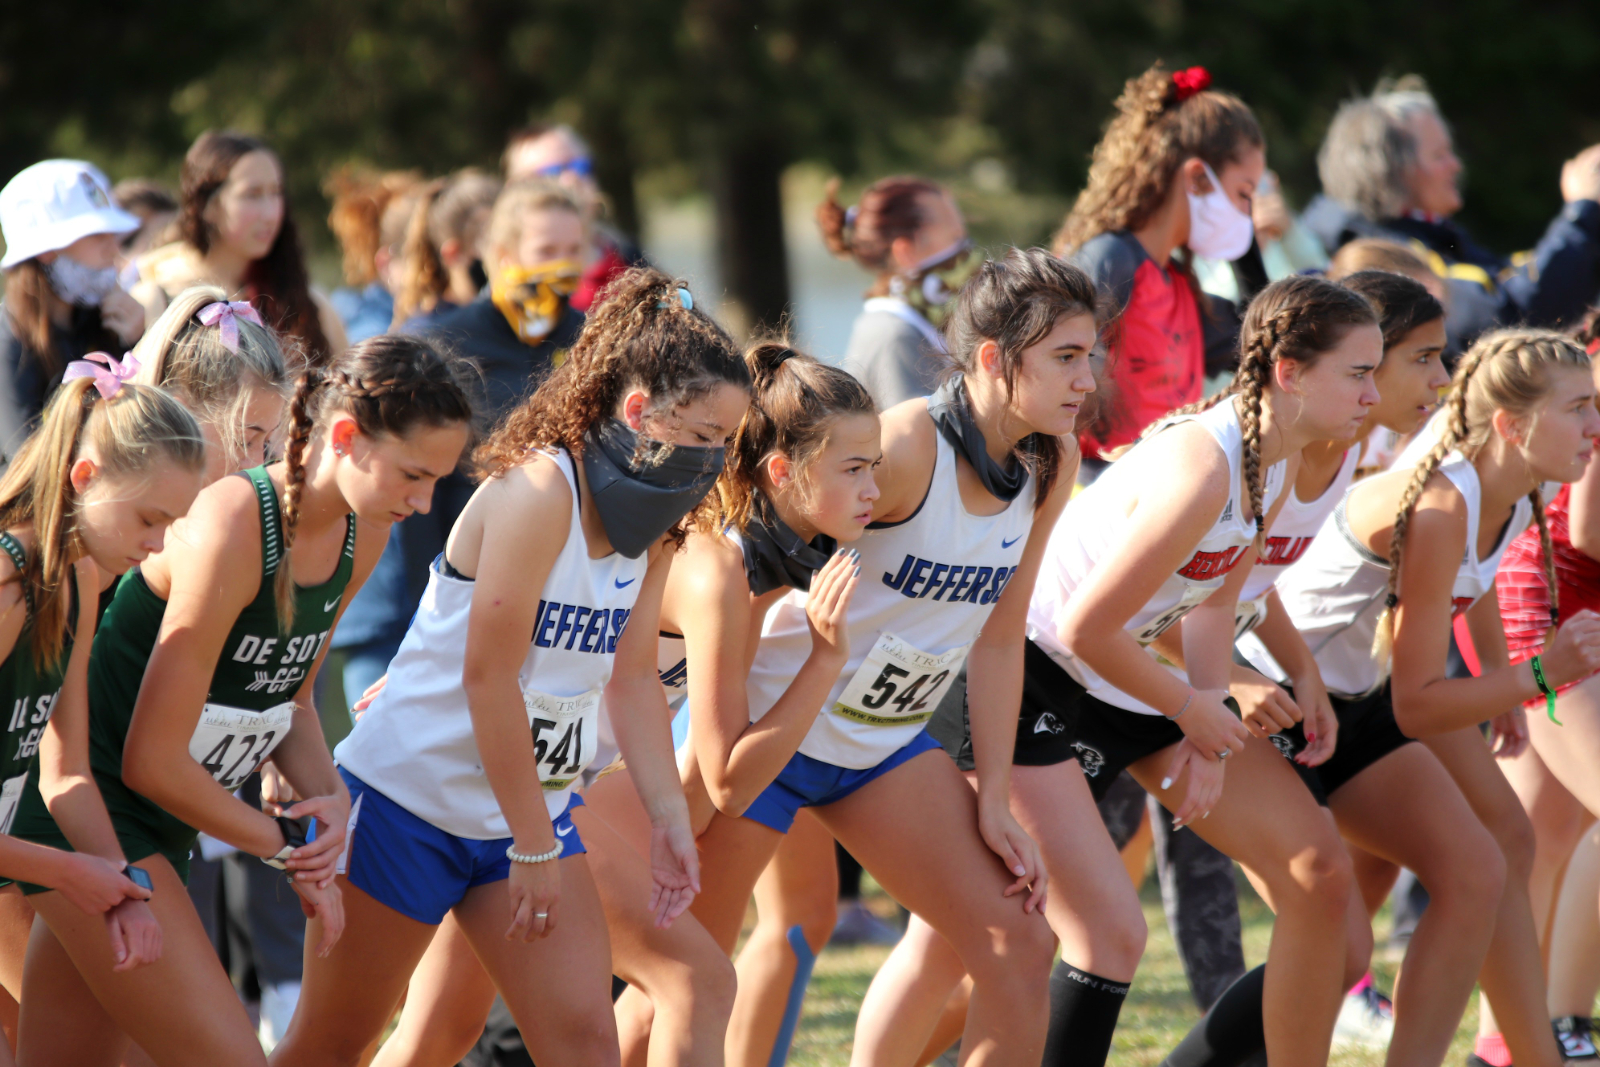 JHS Girls' Cross Country at West City Park 10/17/20